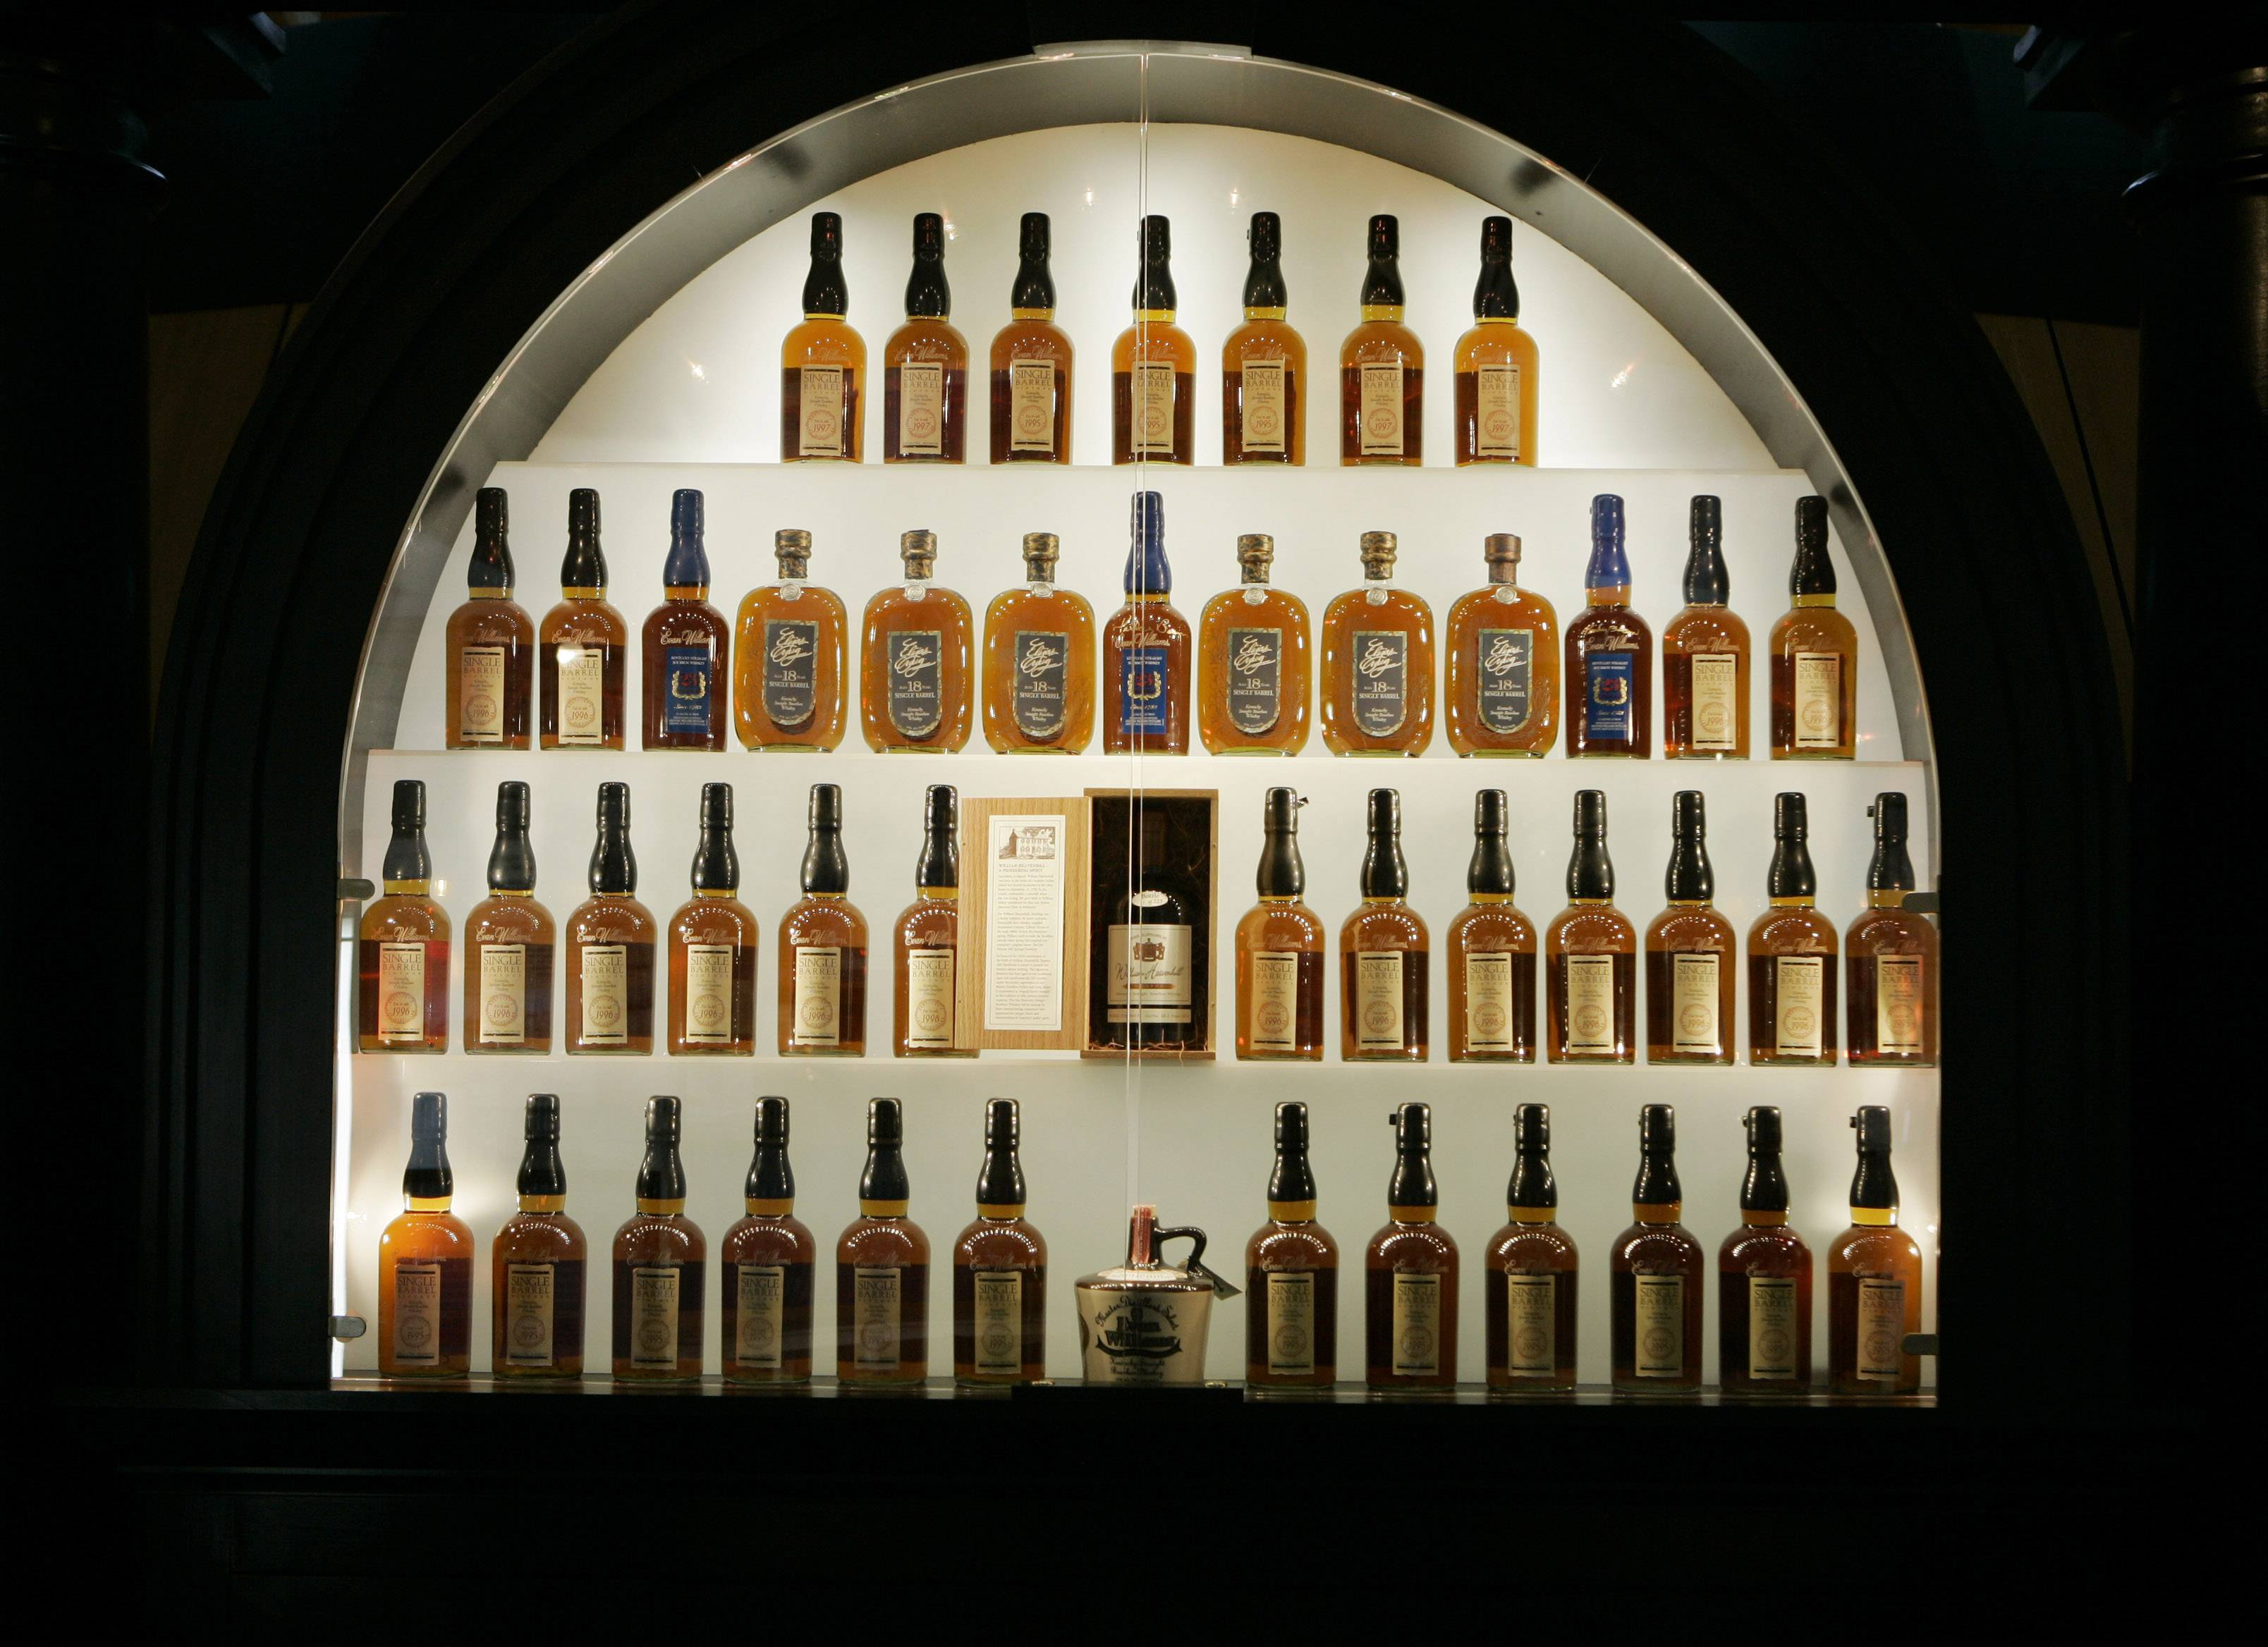 Bottles of bourbon are on display in a case at the Heaven Hill Bourbon Heritage Center in Bardstown, Ky. Kentucky bourbon makers have stashed away their largest stockpiles in more than a generation due to resurgent demand for the venerable brown spirit.